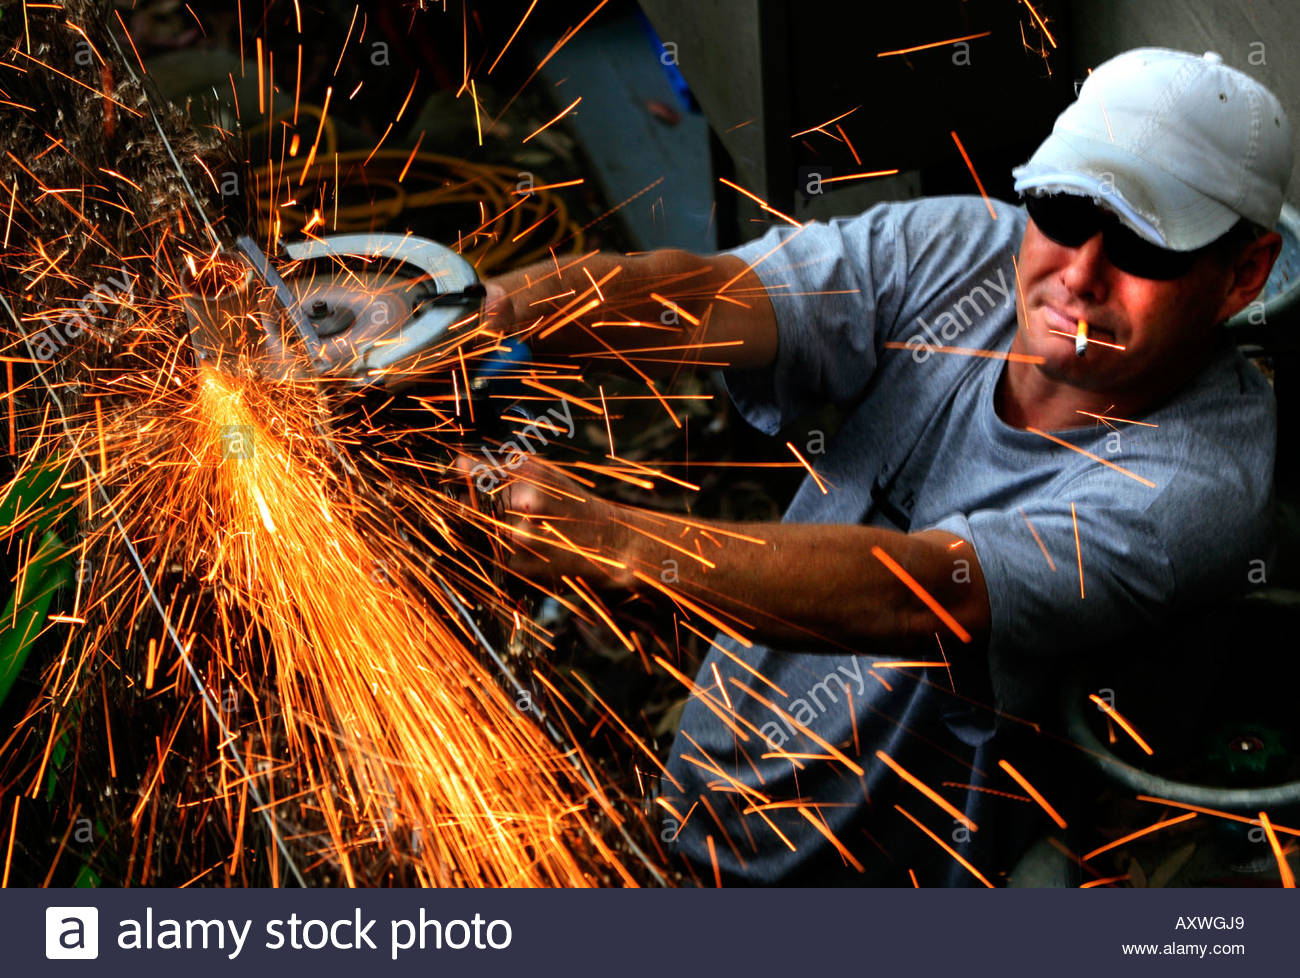 a-worker-uses-a-grinder-with-sparks-flying-off-it-AXWGJ9.jpg